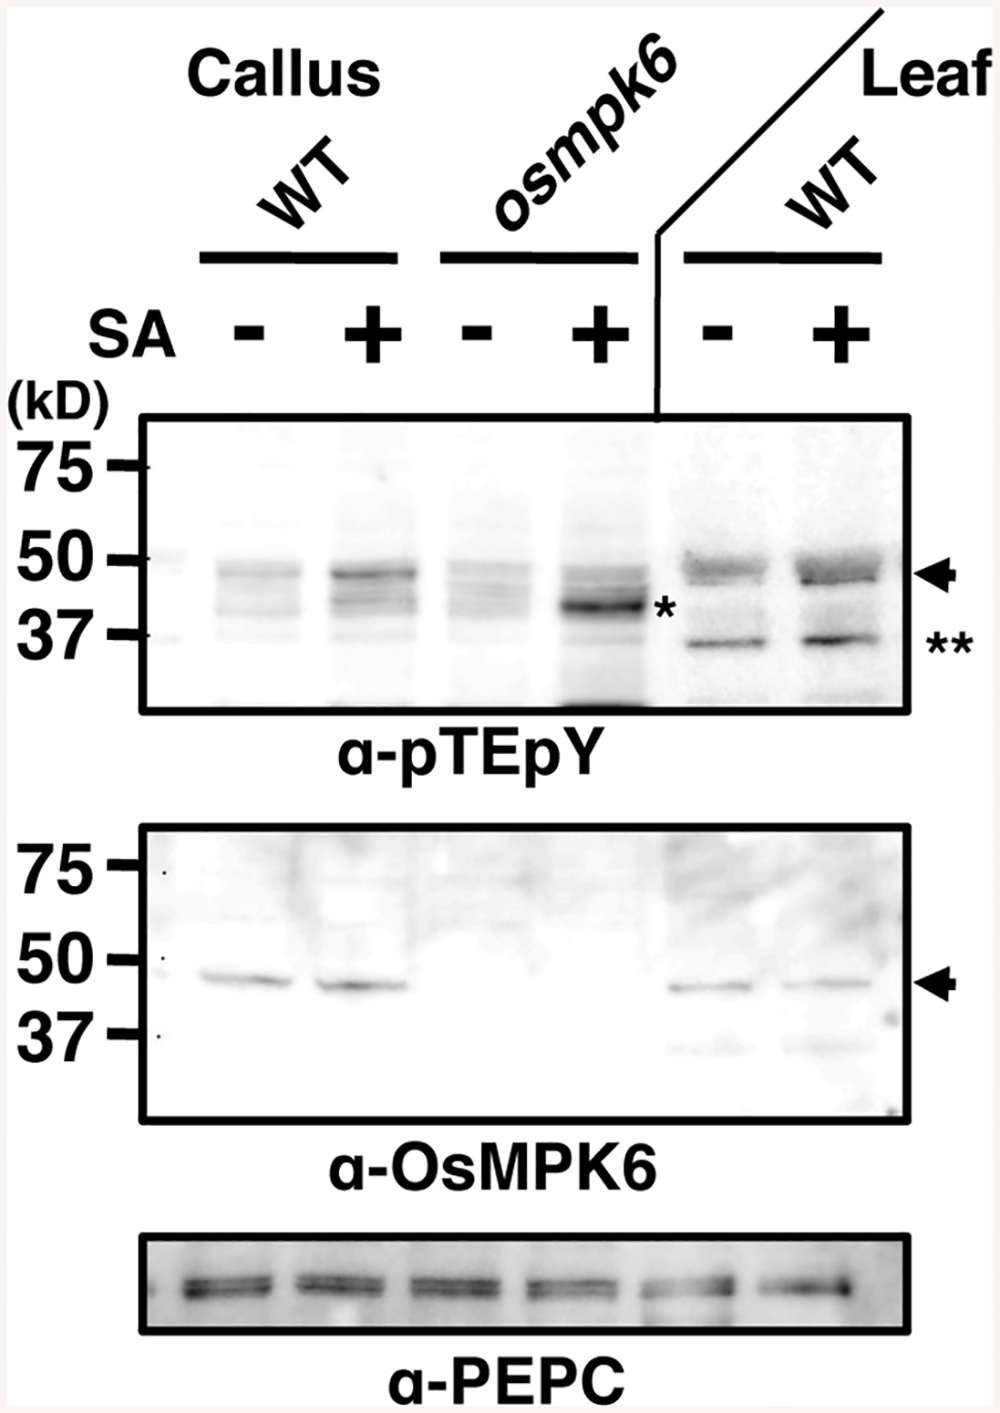 Salicylic acid (SA) induces OsMPK6 phosphorylation.